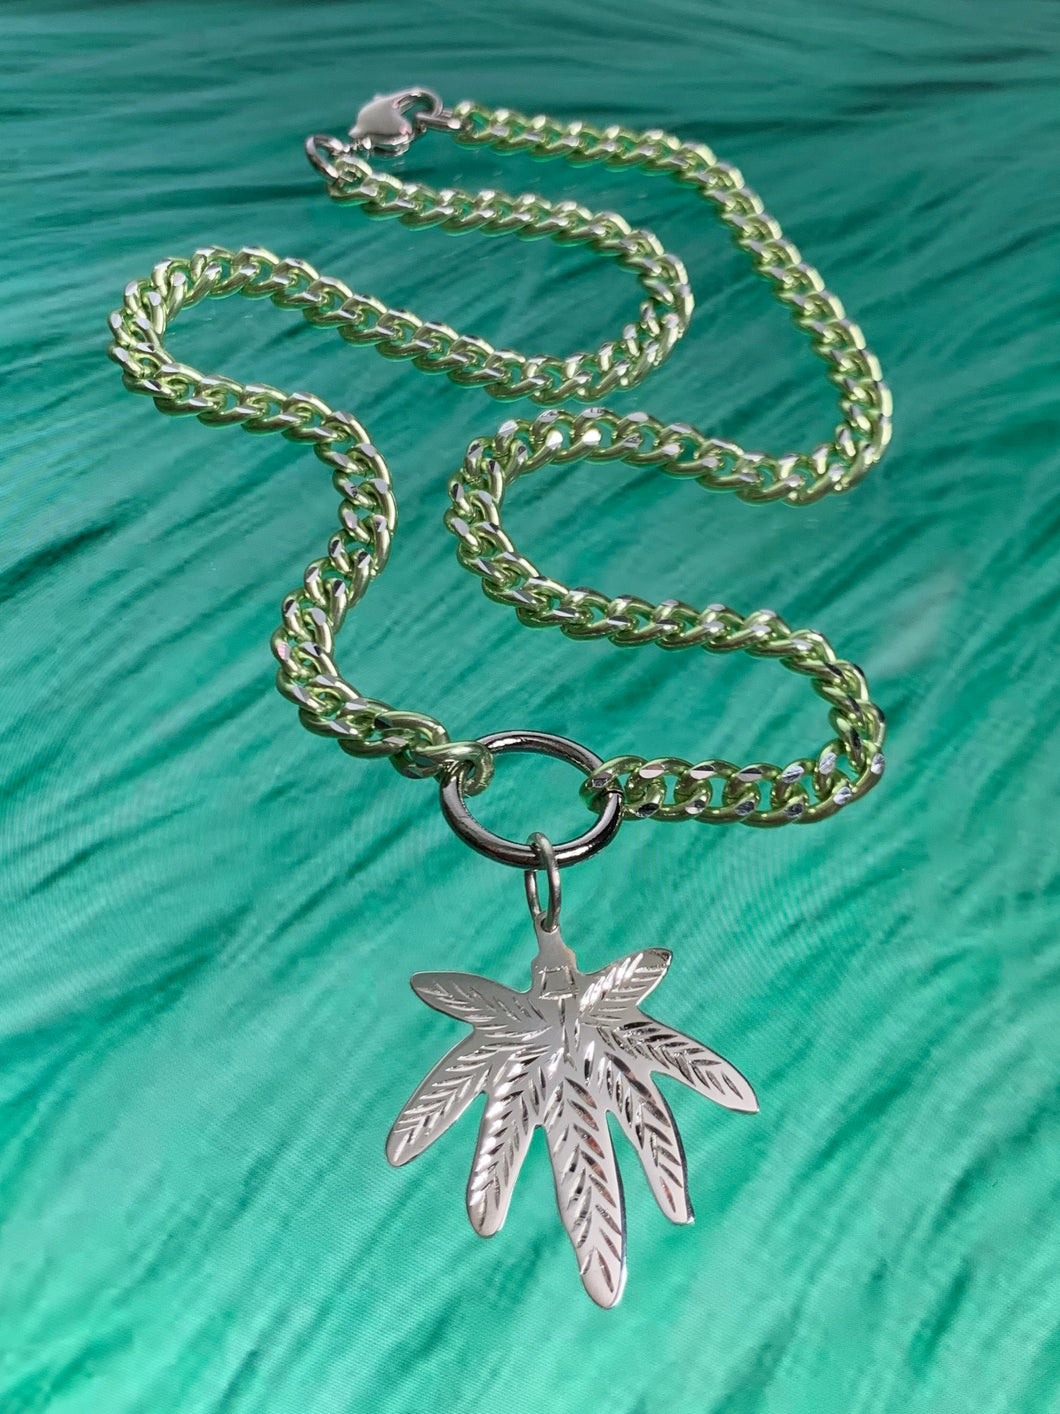 weed leaf chain necklace 💚🌬